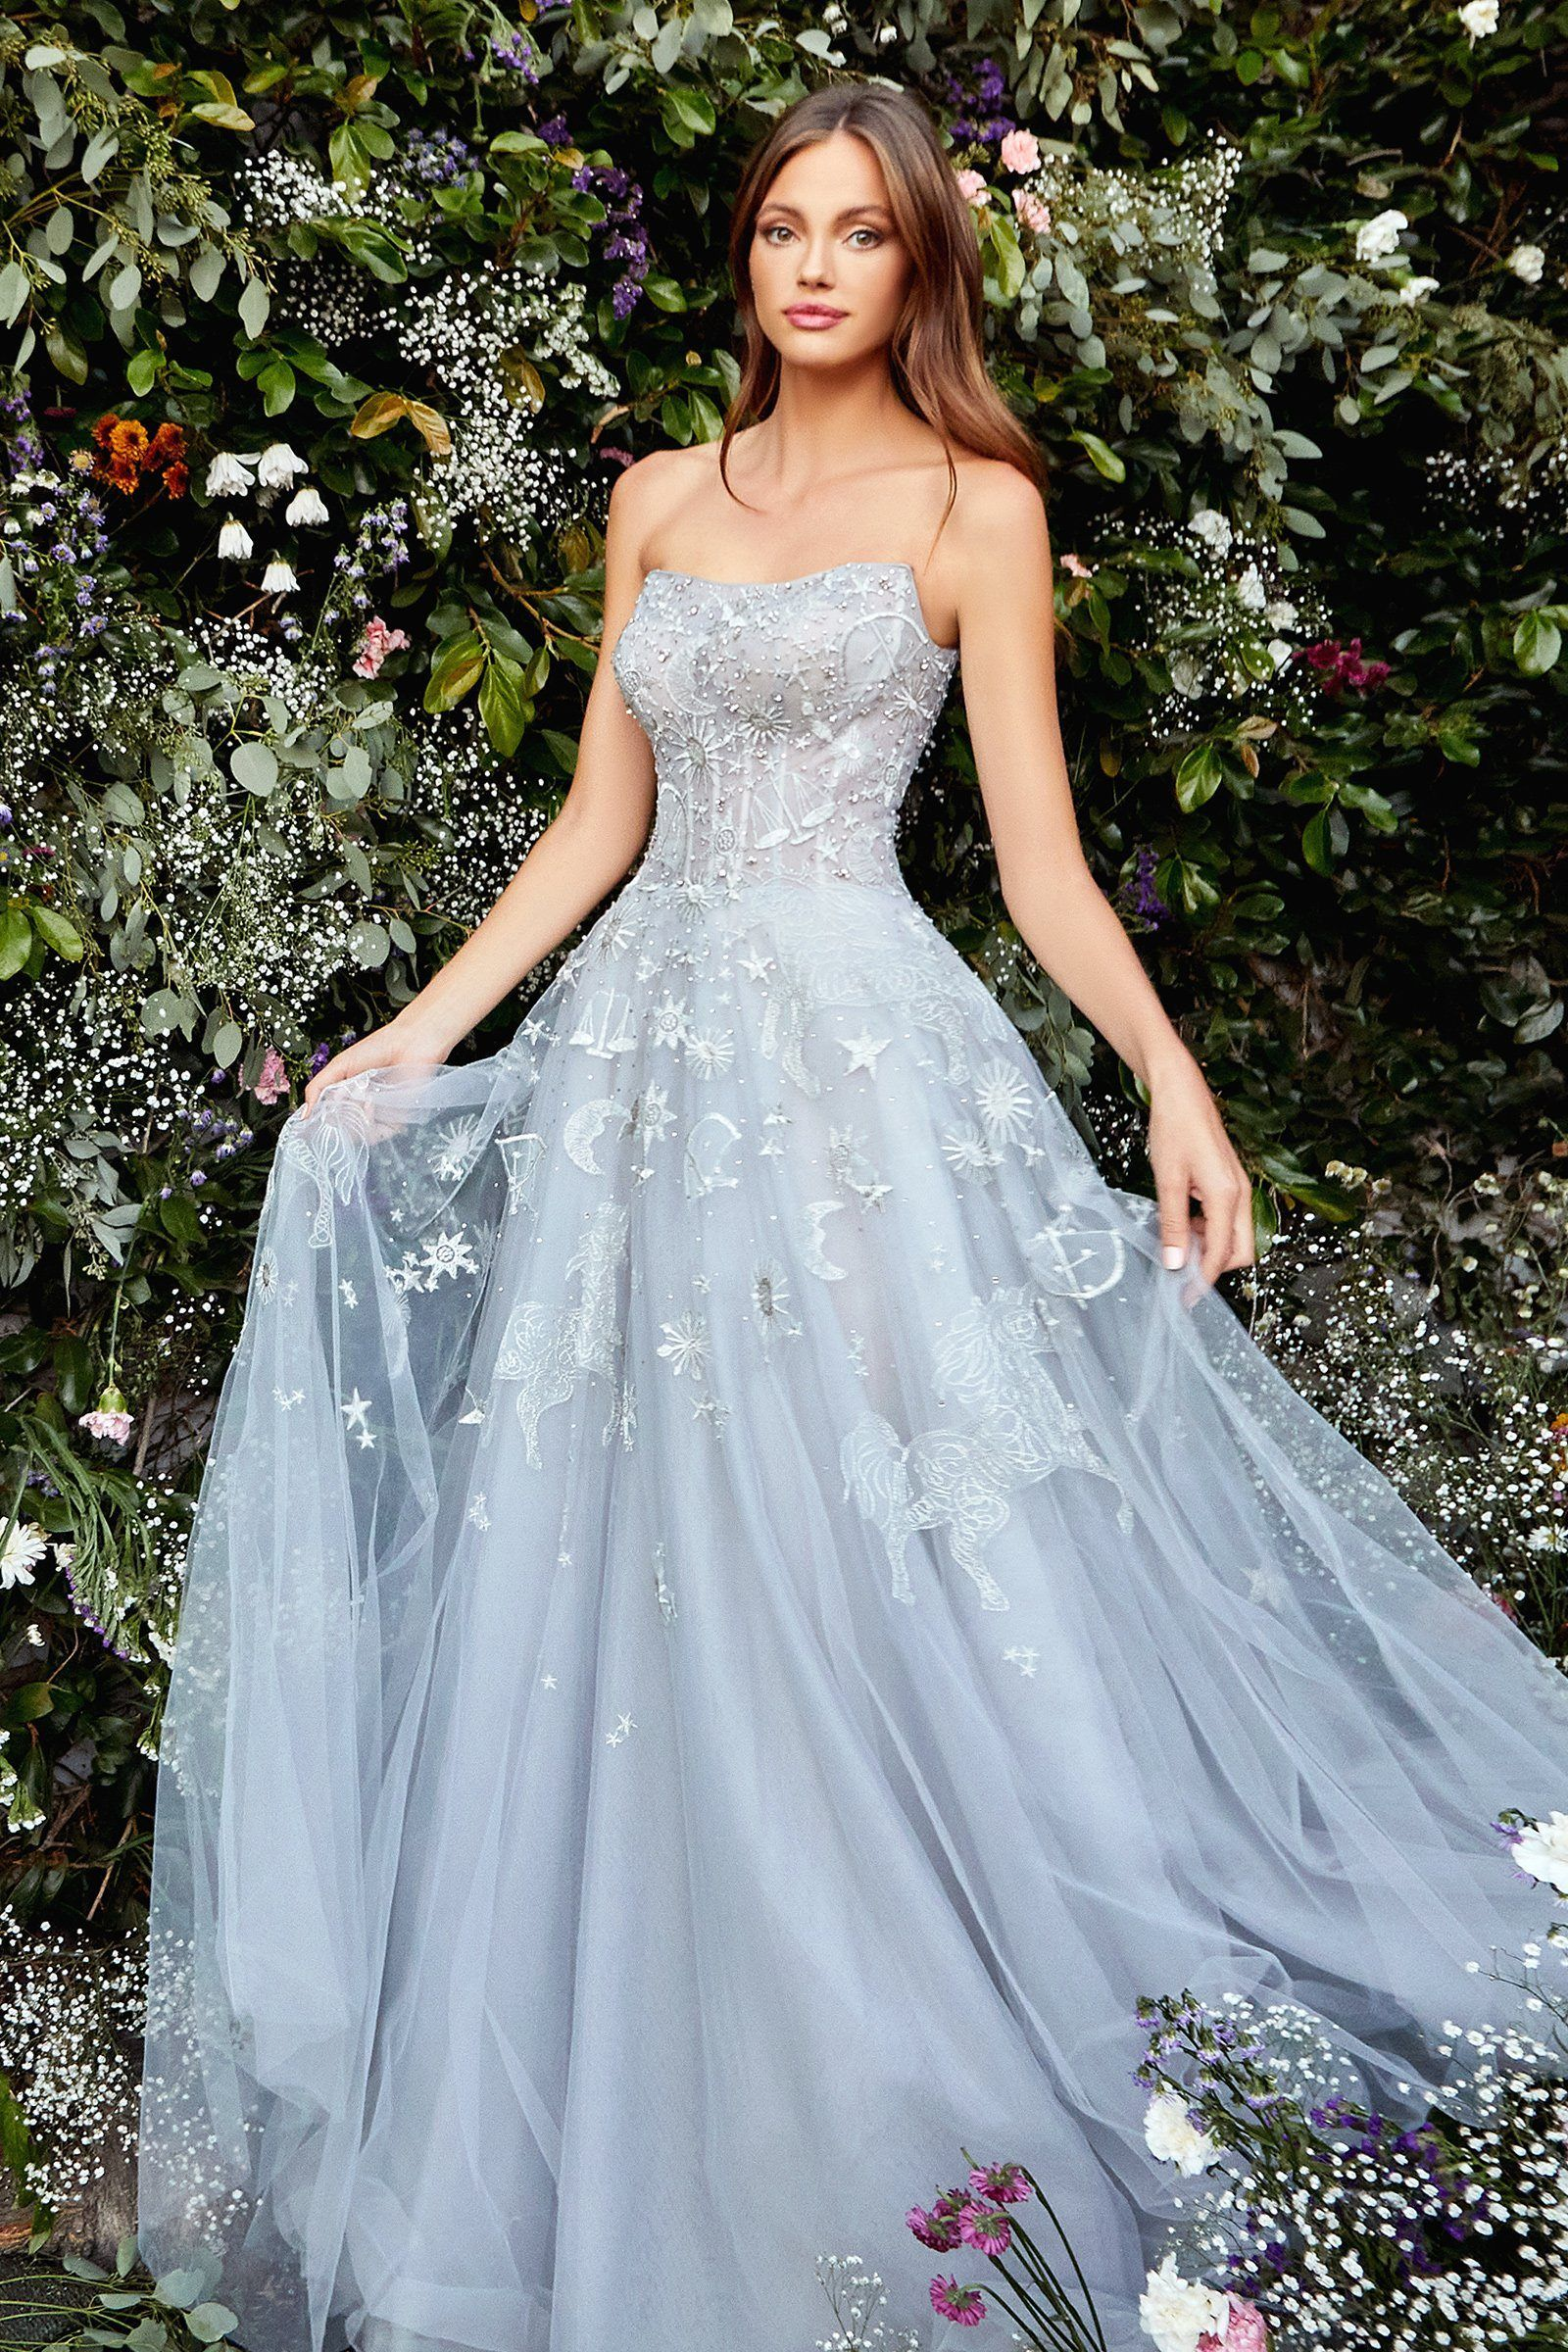 Andrea And Leo A0890 Dress In 2021 Pretty Prom Dresses Stunning Prom Dresses Cute Prom Dresses [ 2400 x 1600 Pixel ]